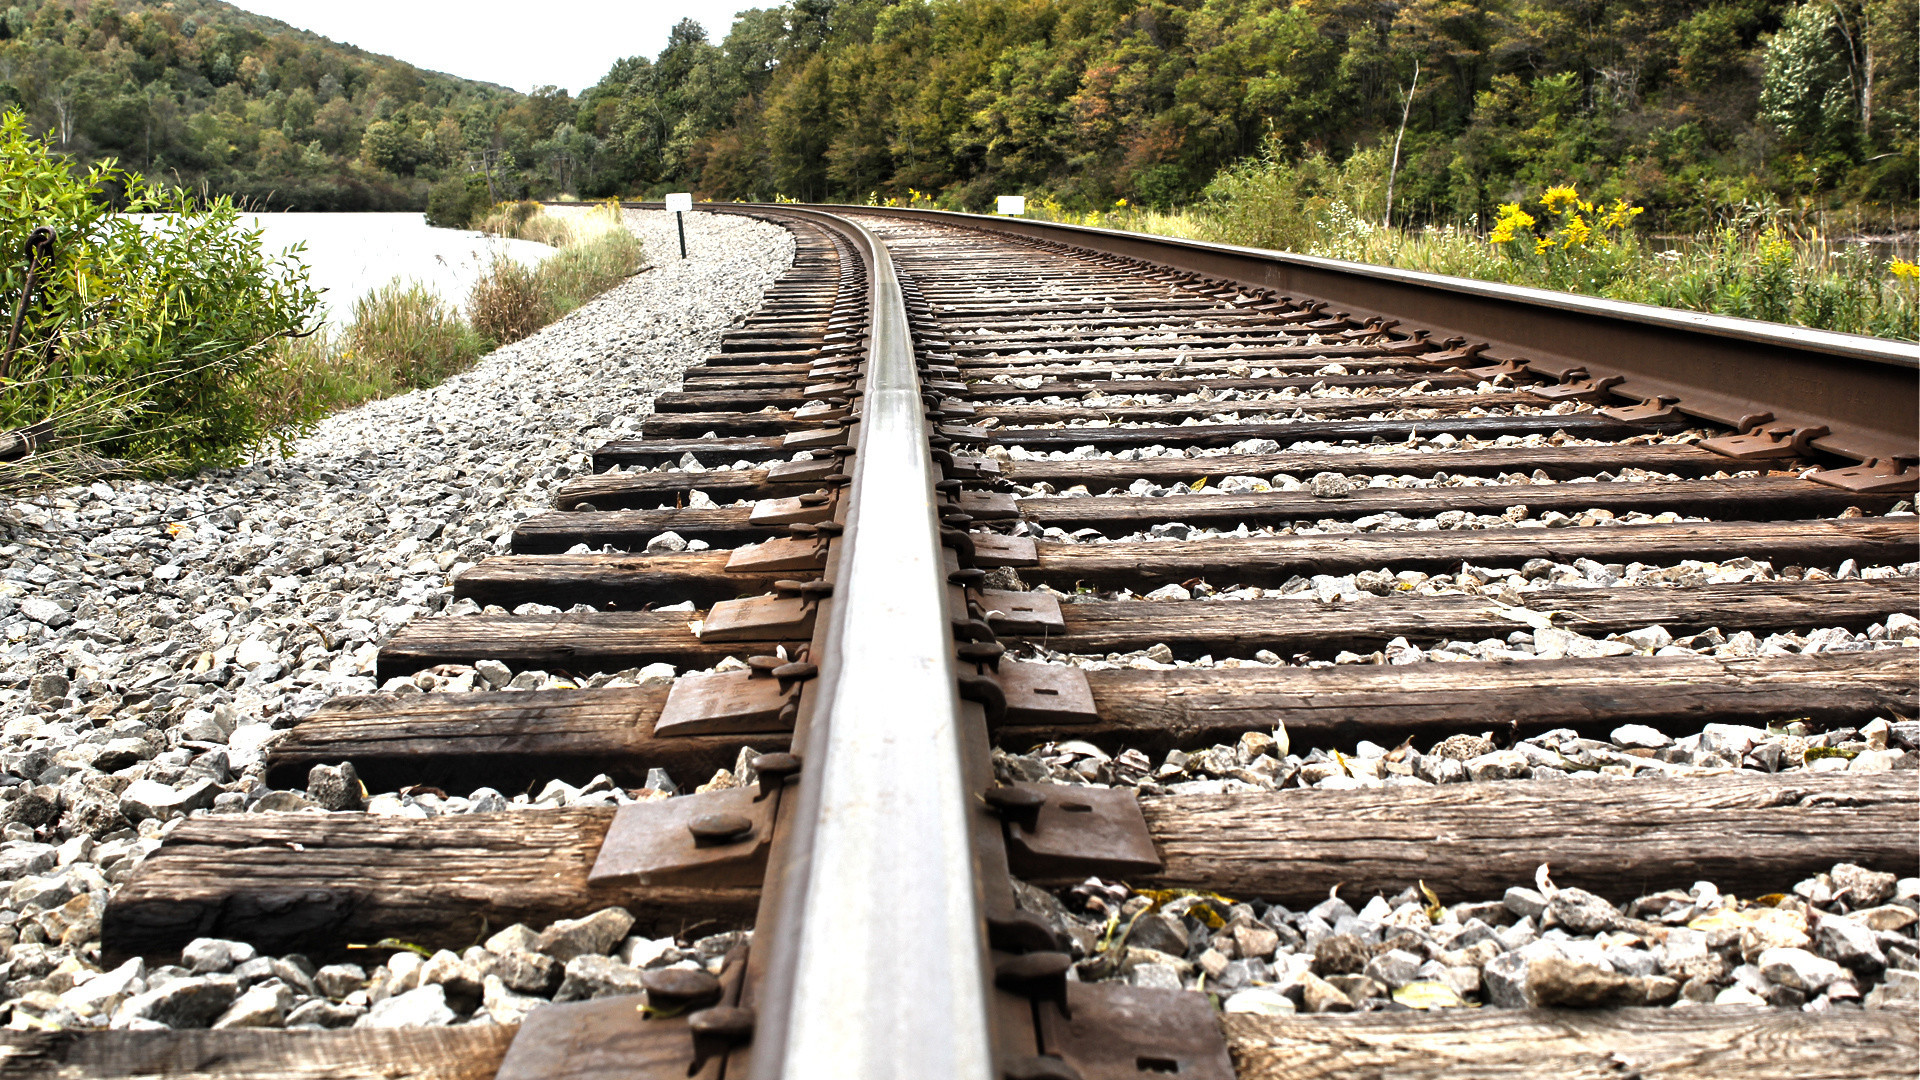 Railway Track Wallpapers Full Hd - Railroad Spike On Track , HD Wallpaper & Backgrounds